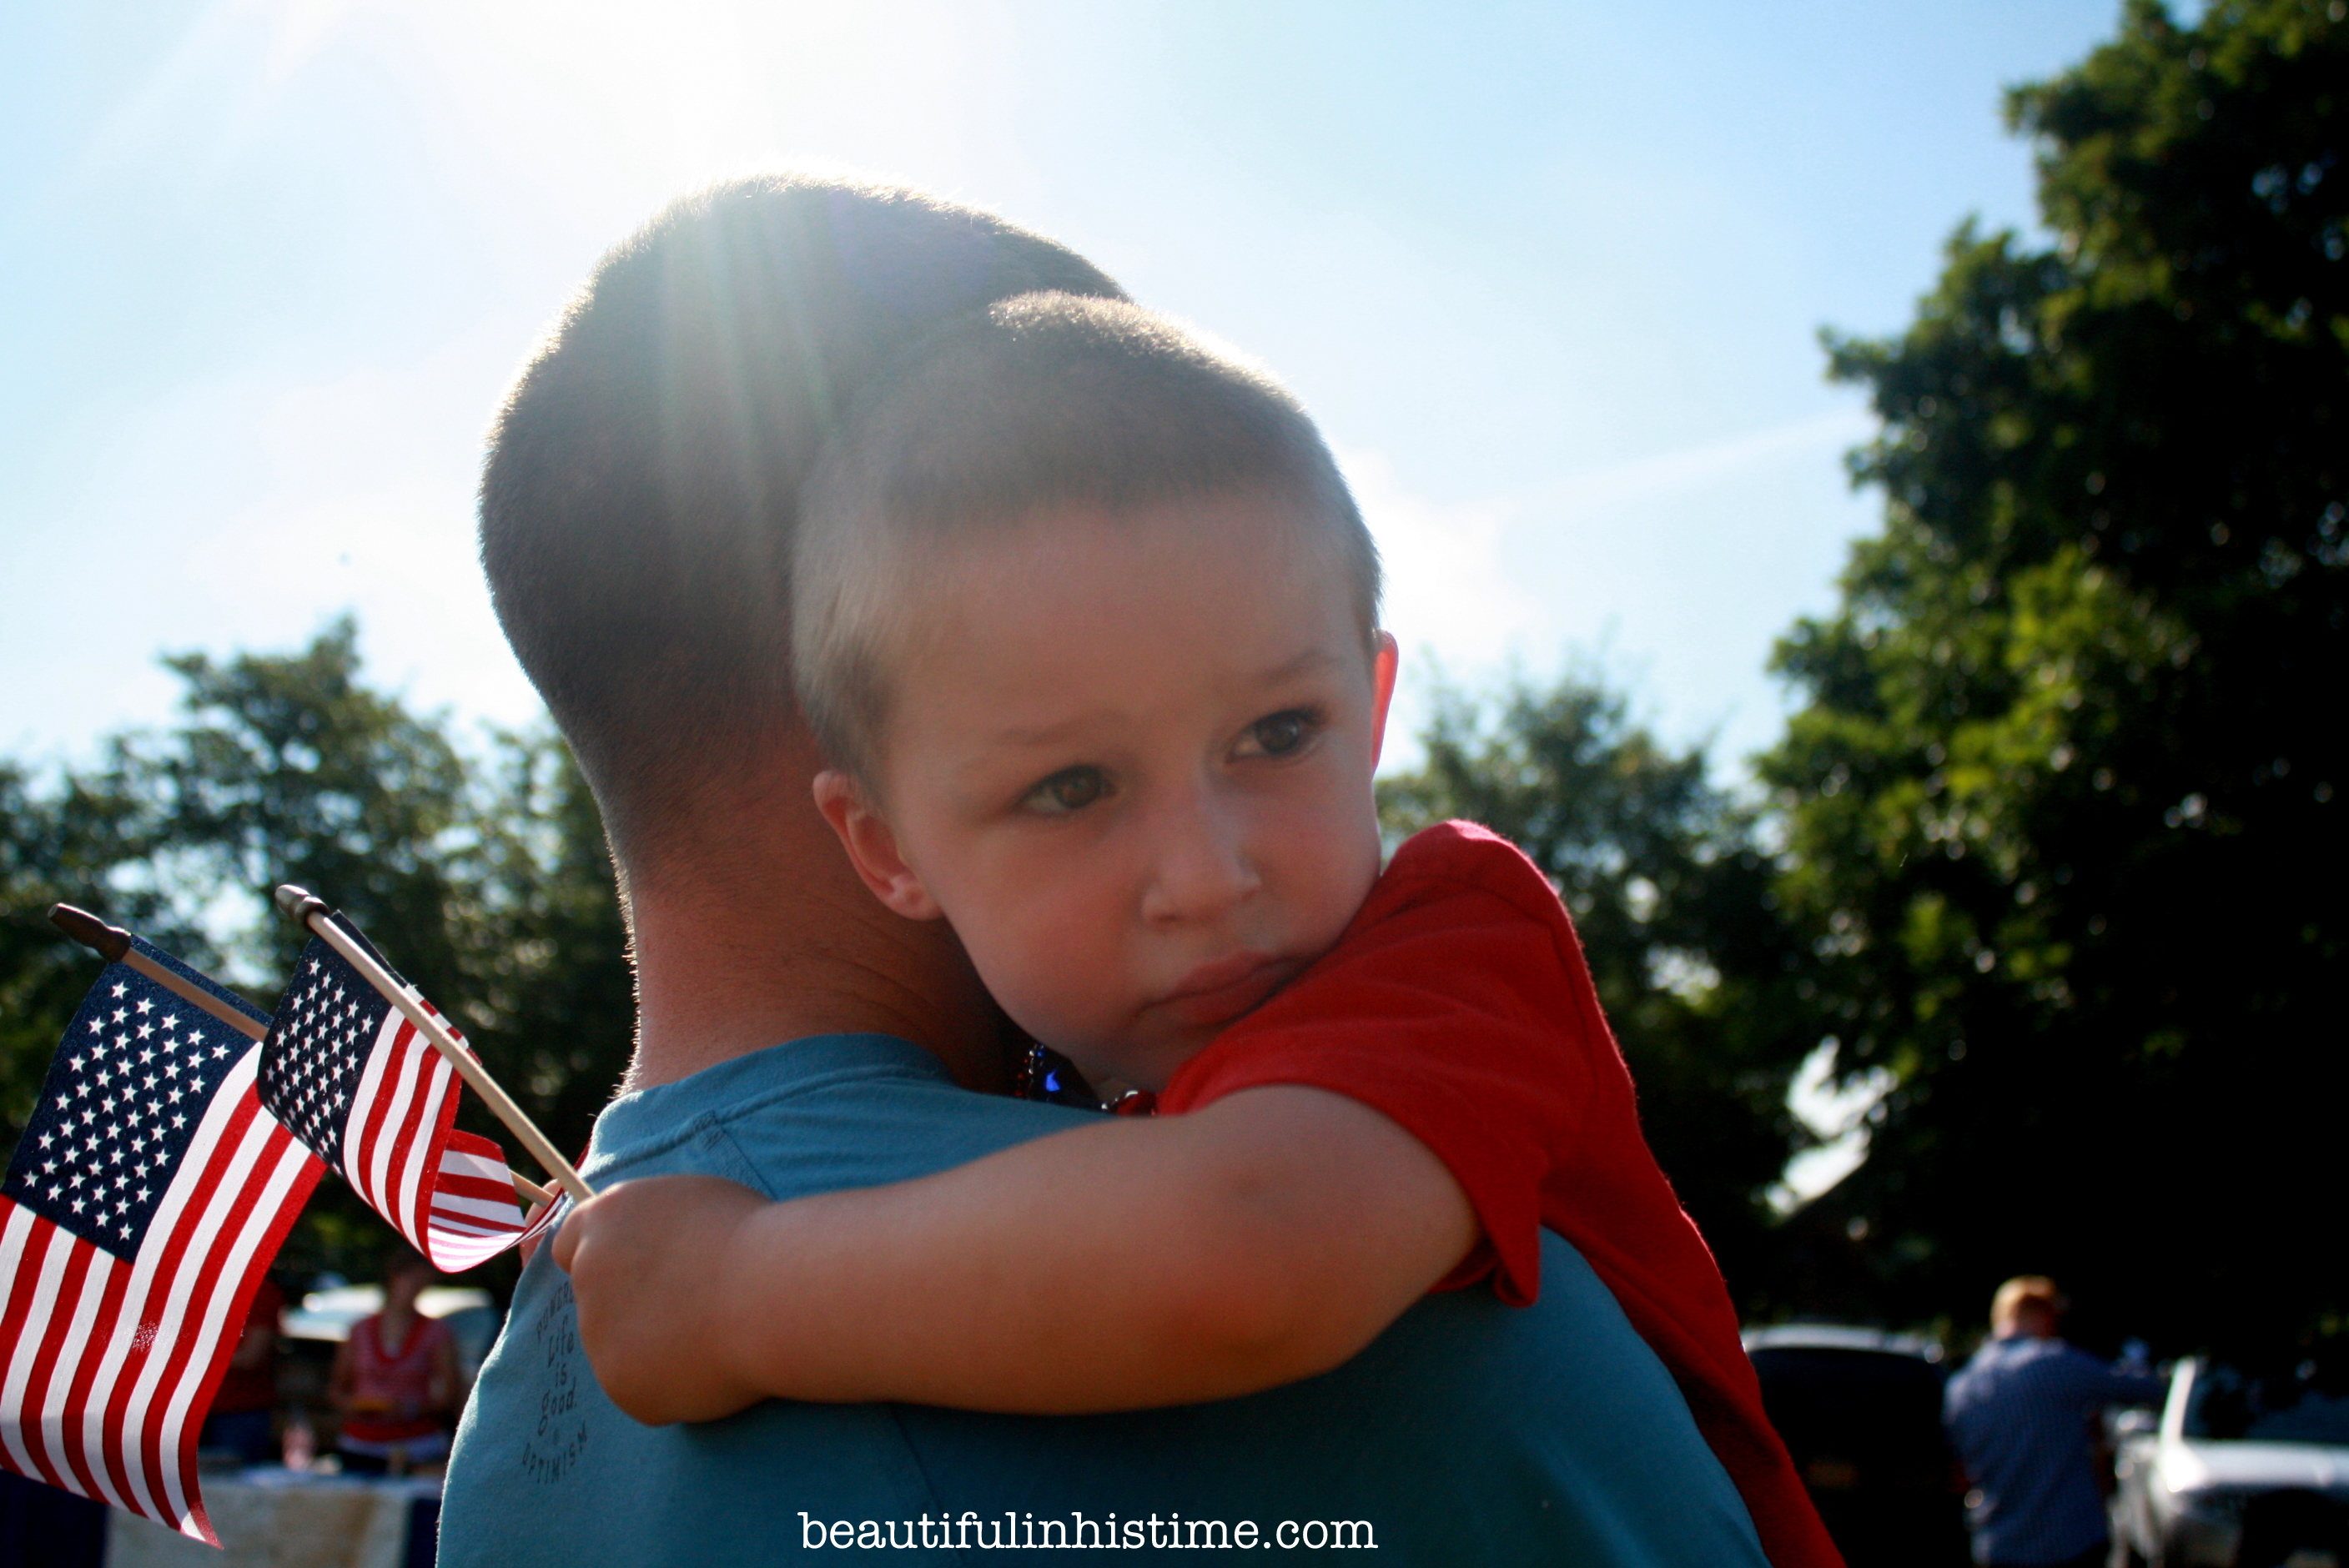 Patriotic Preschool Parade in Small-town North Carolina #patriotic #preschool #parade #4thofjuly #independenceday #Northcarolina